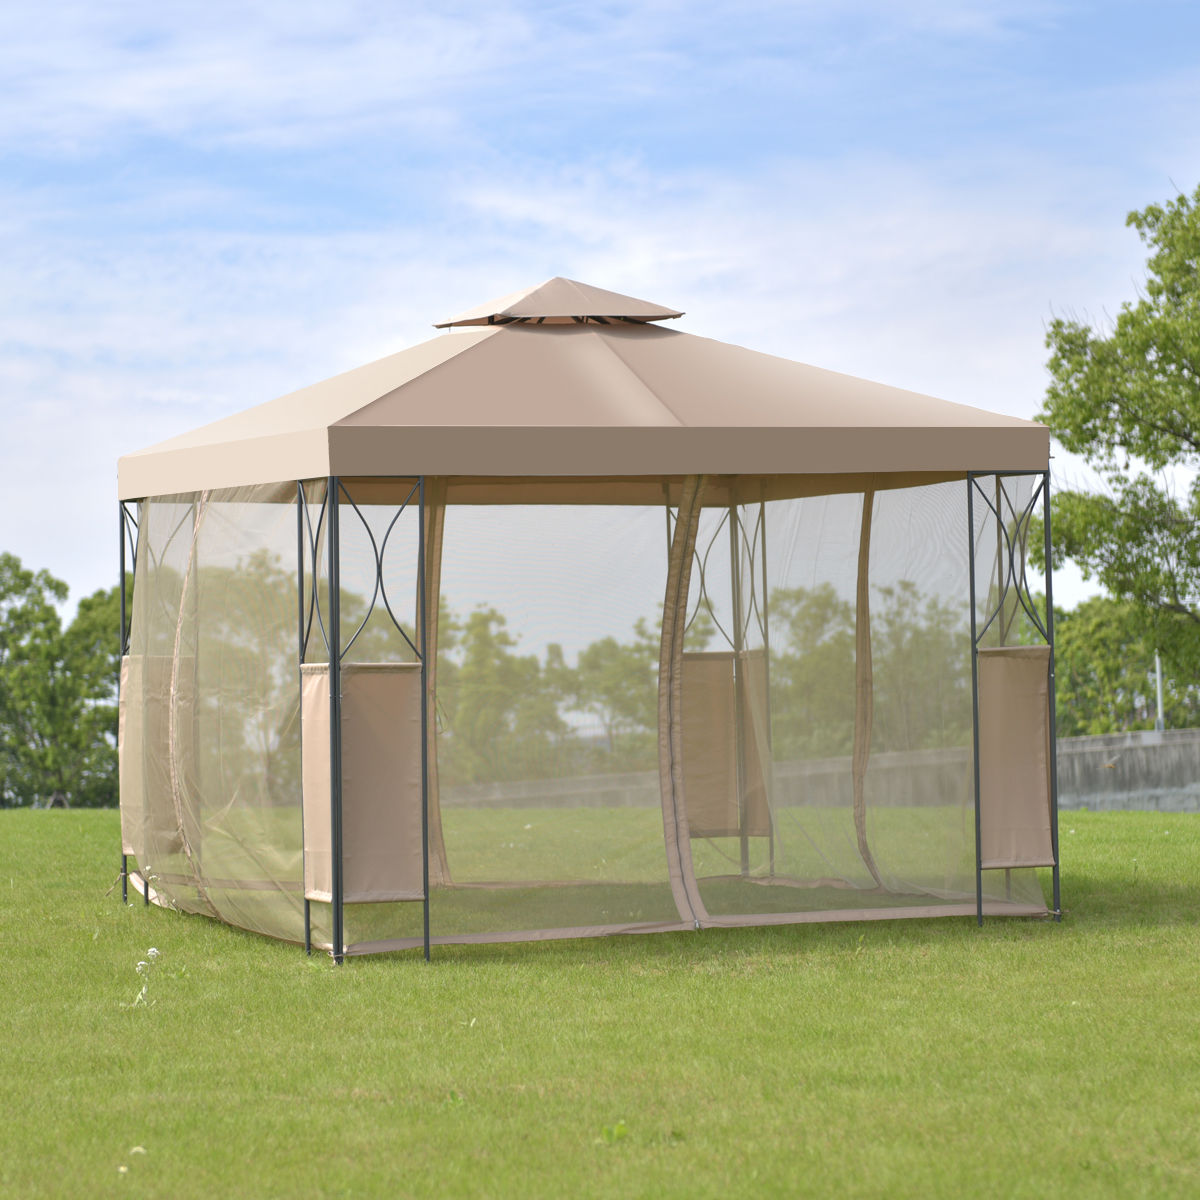 Charmant Costway 2 Tier 10u0027x10u0027 Gazebo Canopy Tent Shelter Awning Steel Patio Garden